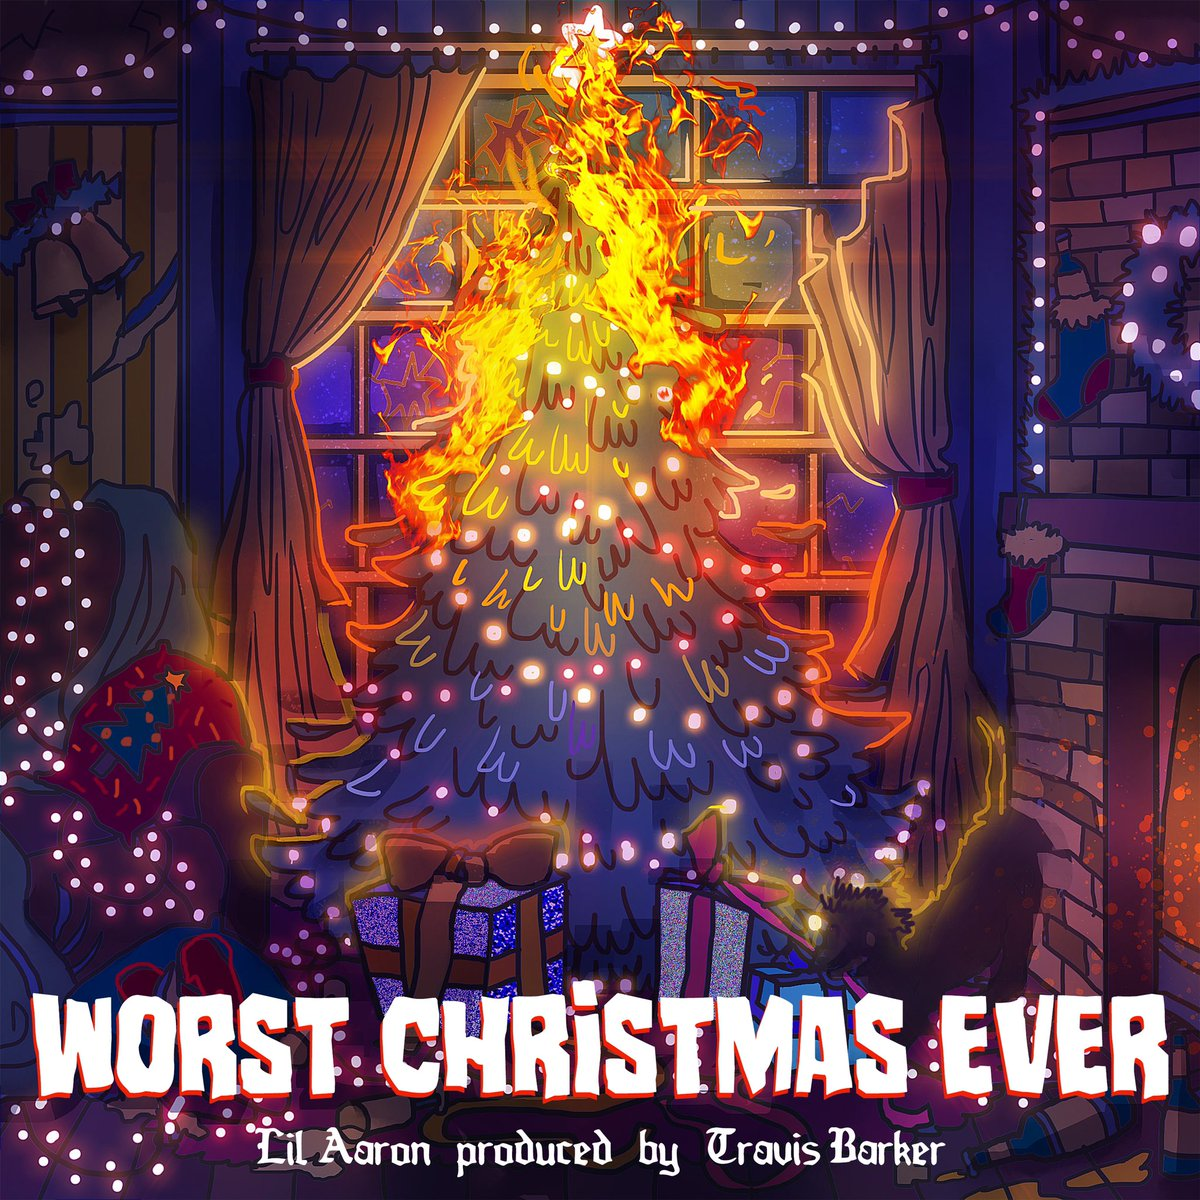 RT @lilaaron911: its out! Worst Christmas Ever prod. @travisbarker ????????  https://t.co/OugPYWNZOg https://t.co/MClL6bsHwk